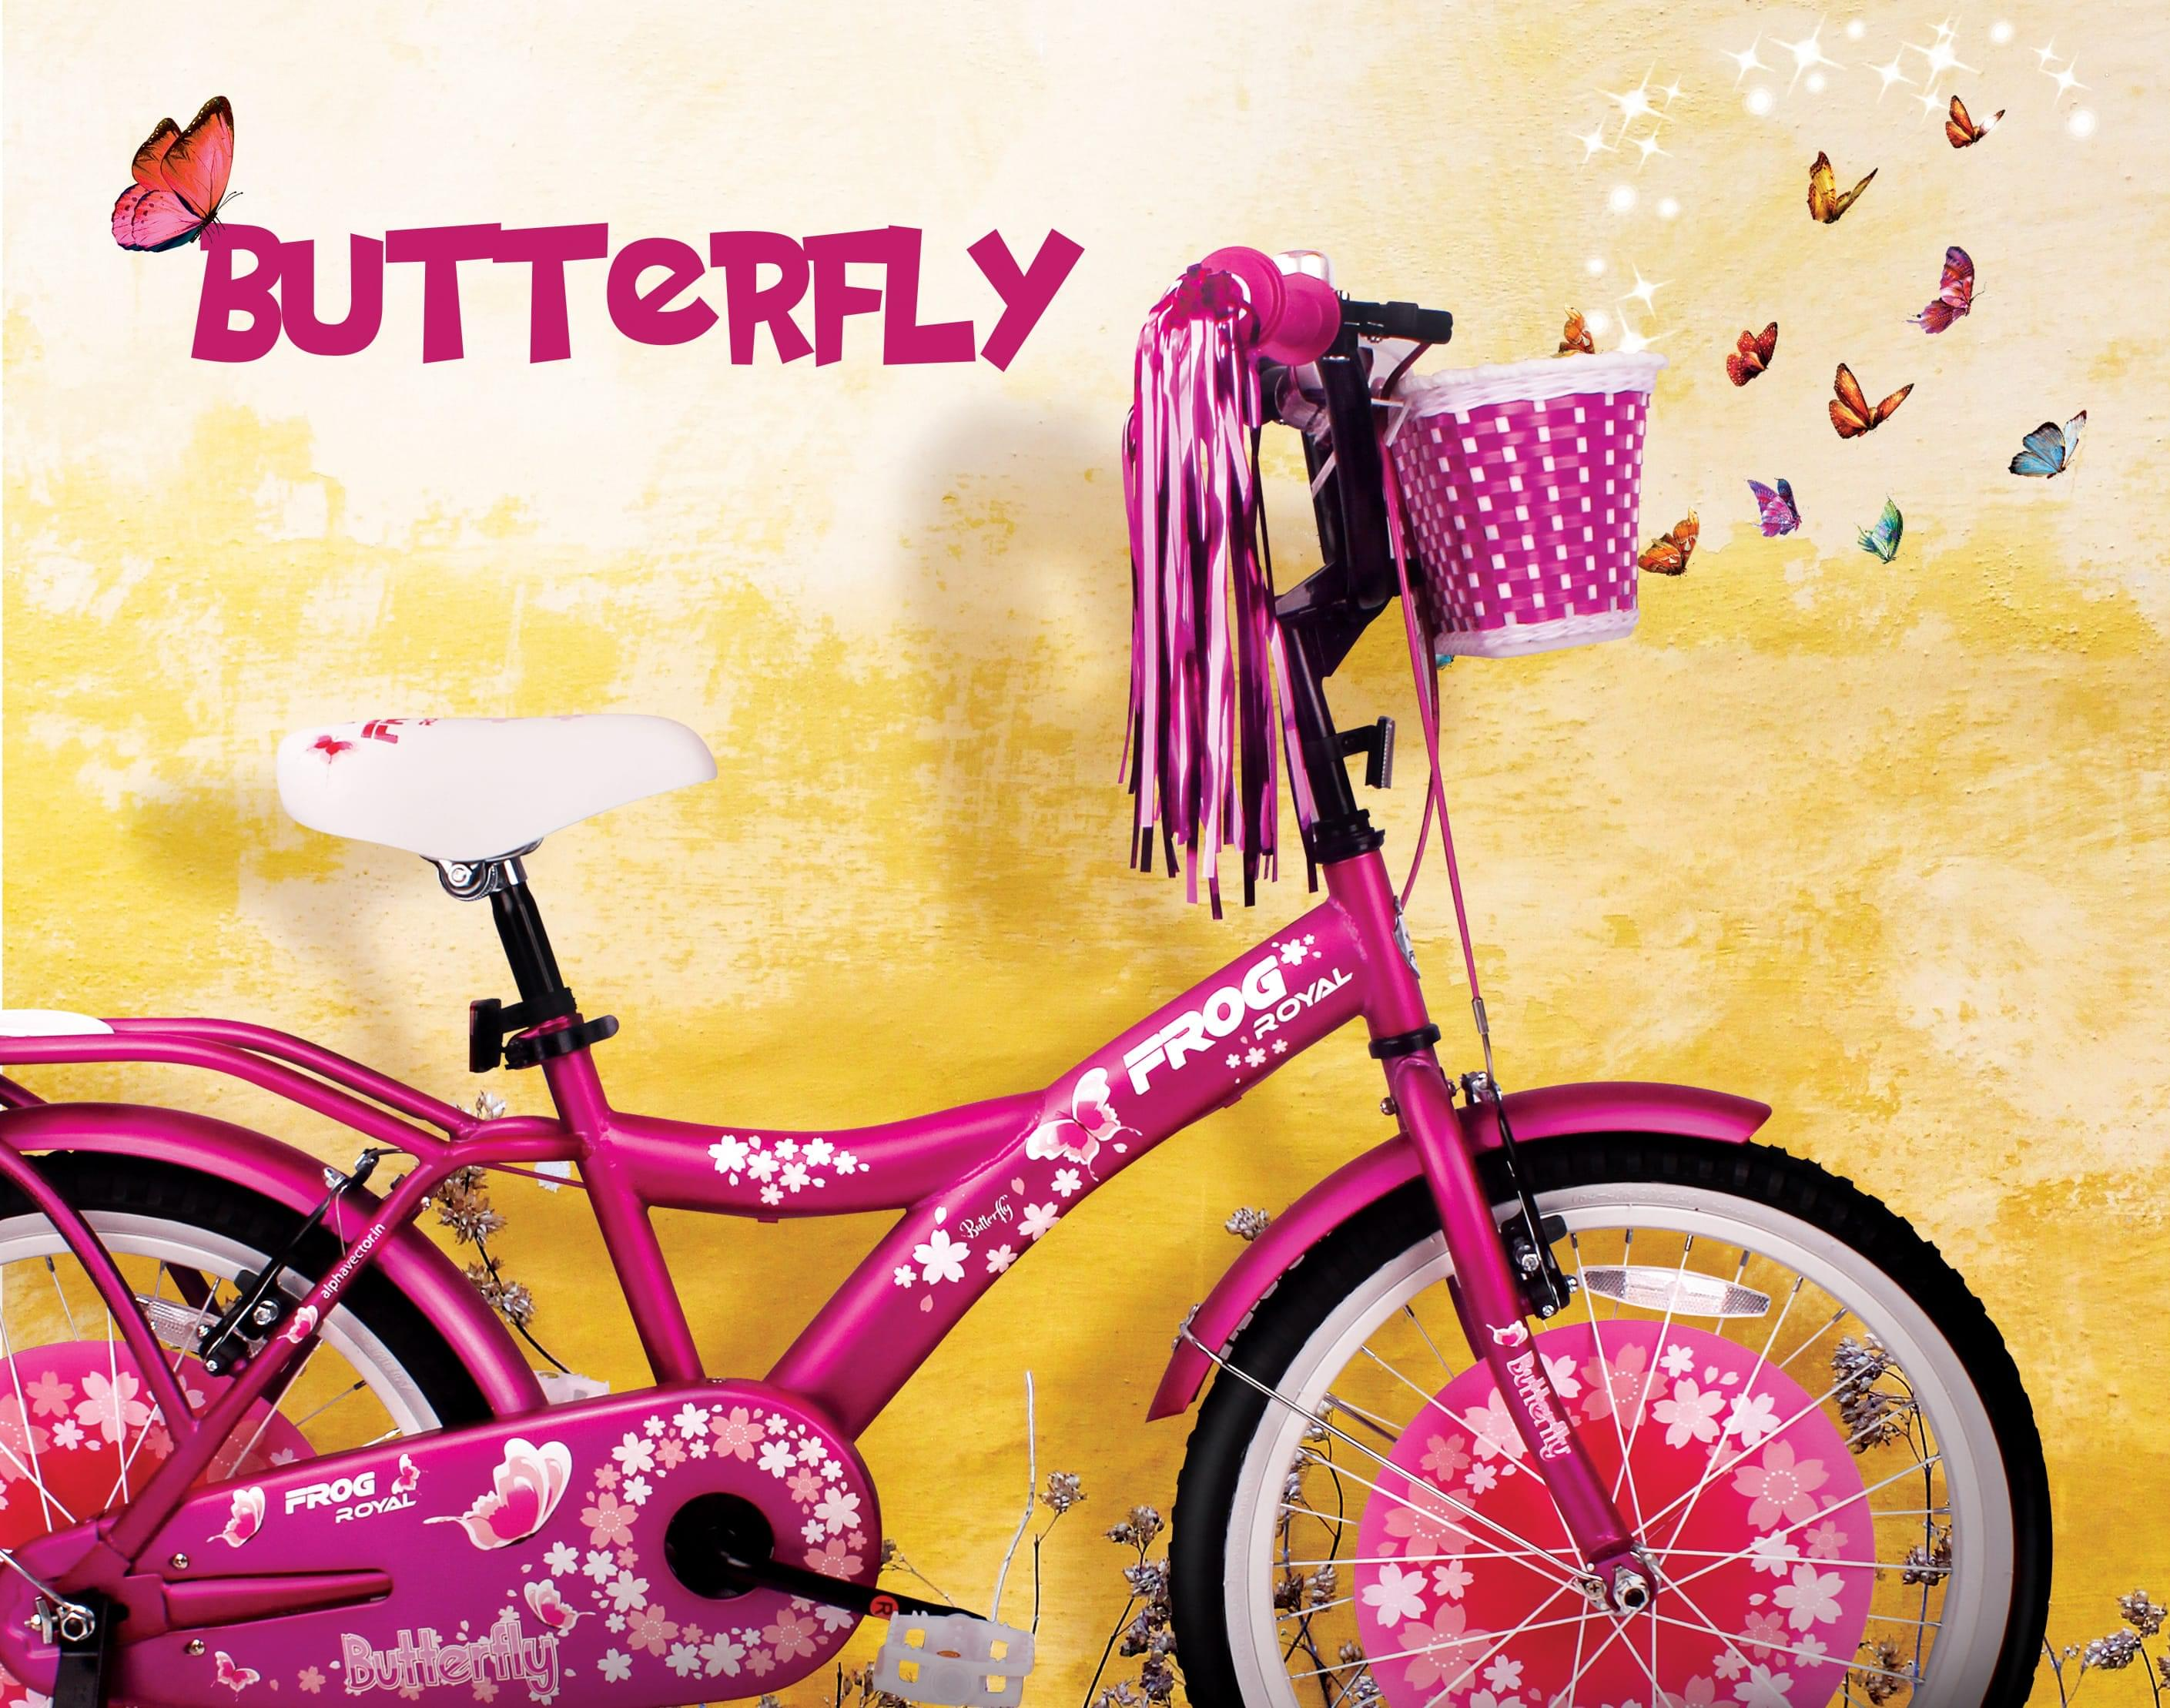 Butterfly 20 (Pink color) image 5